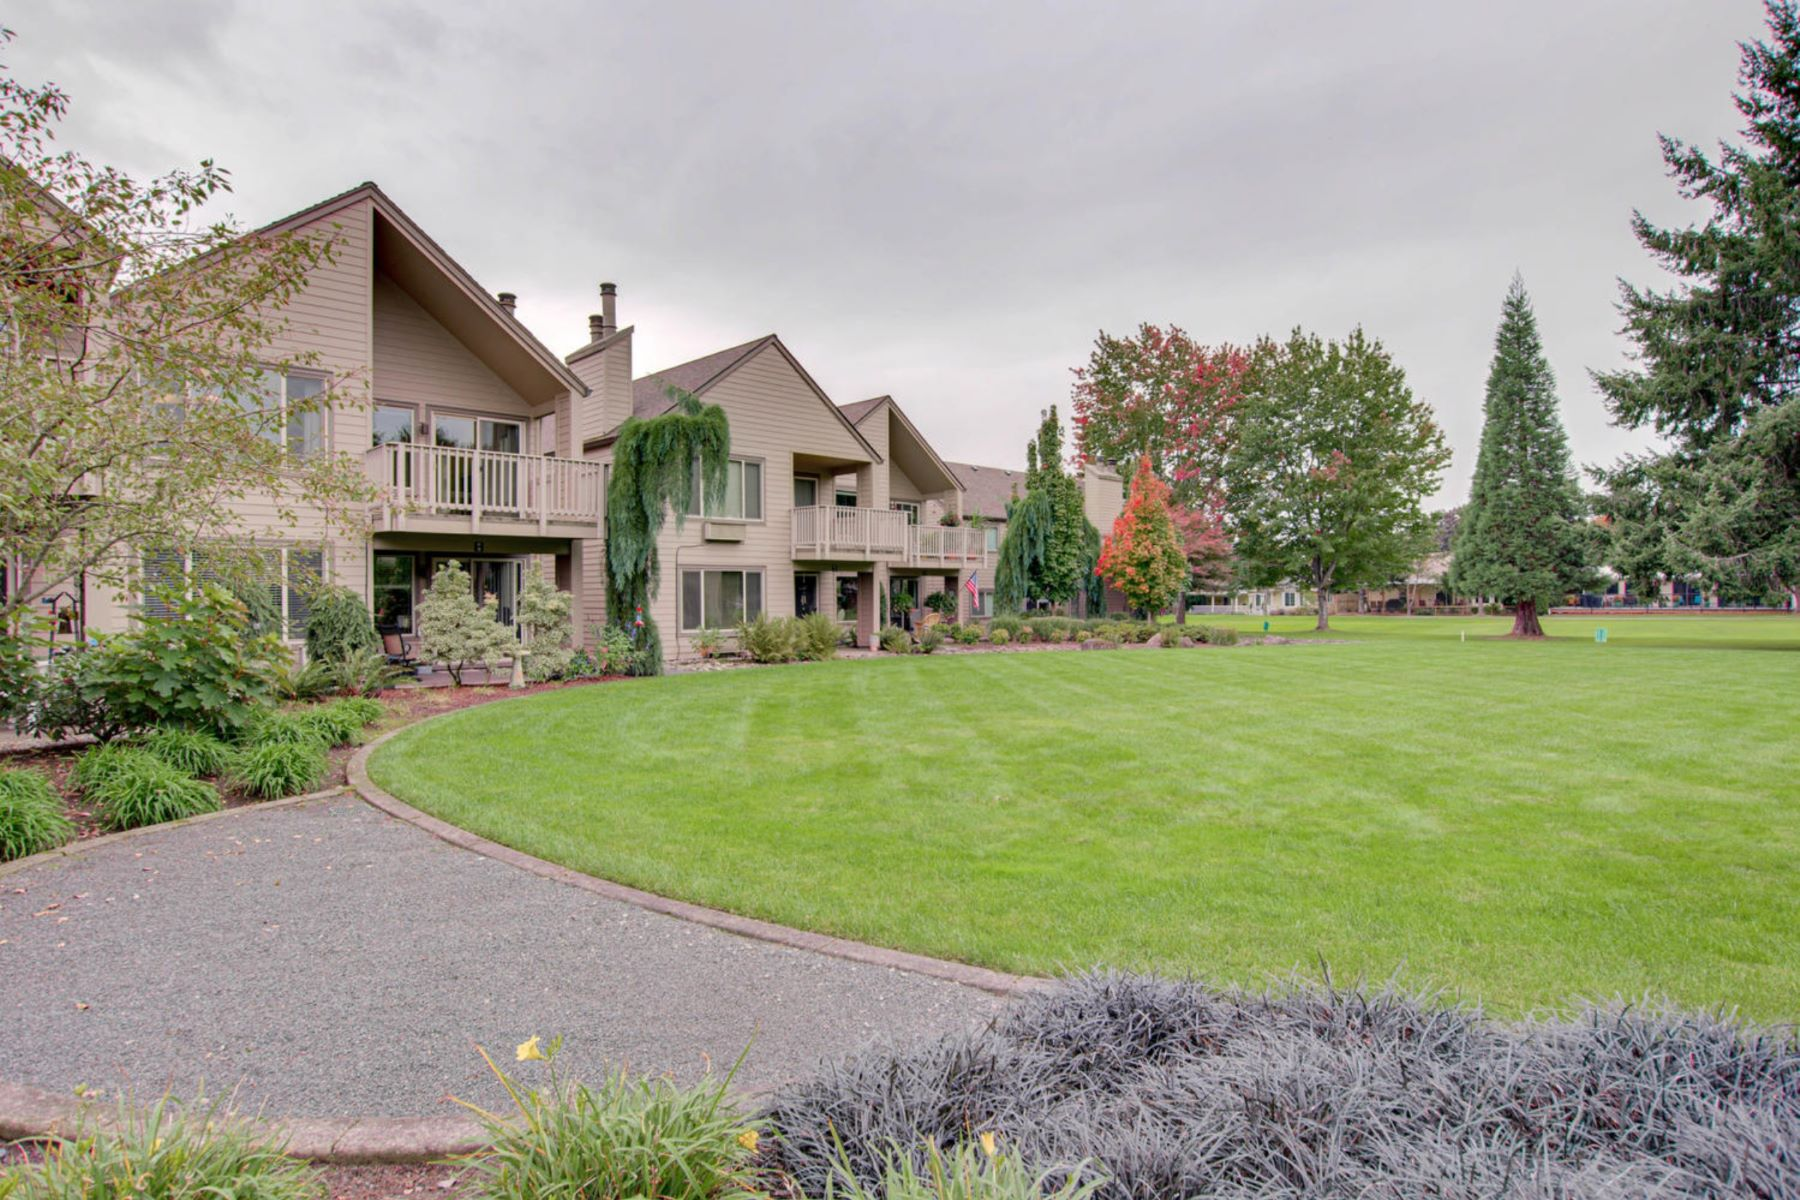 Condominiums for Sale at 2606 SE BAYPOINT DR 21 Vancouver, WA 98683 2606 Baypoint Dr 21 Vancouver, Washington 98683 United States